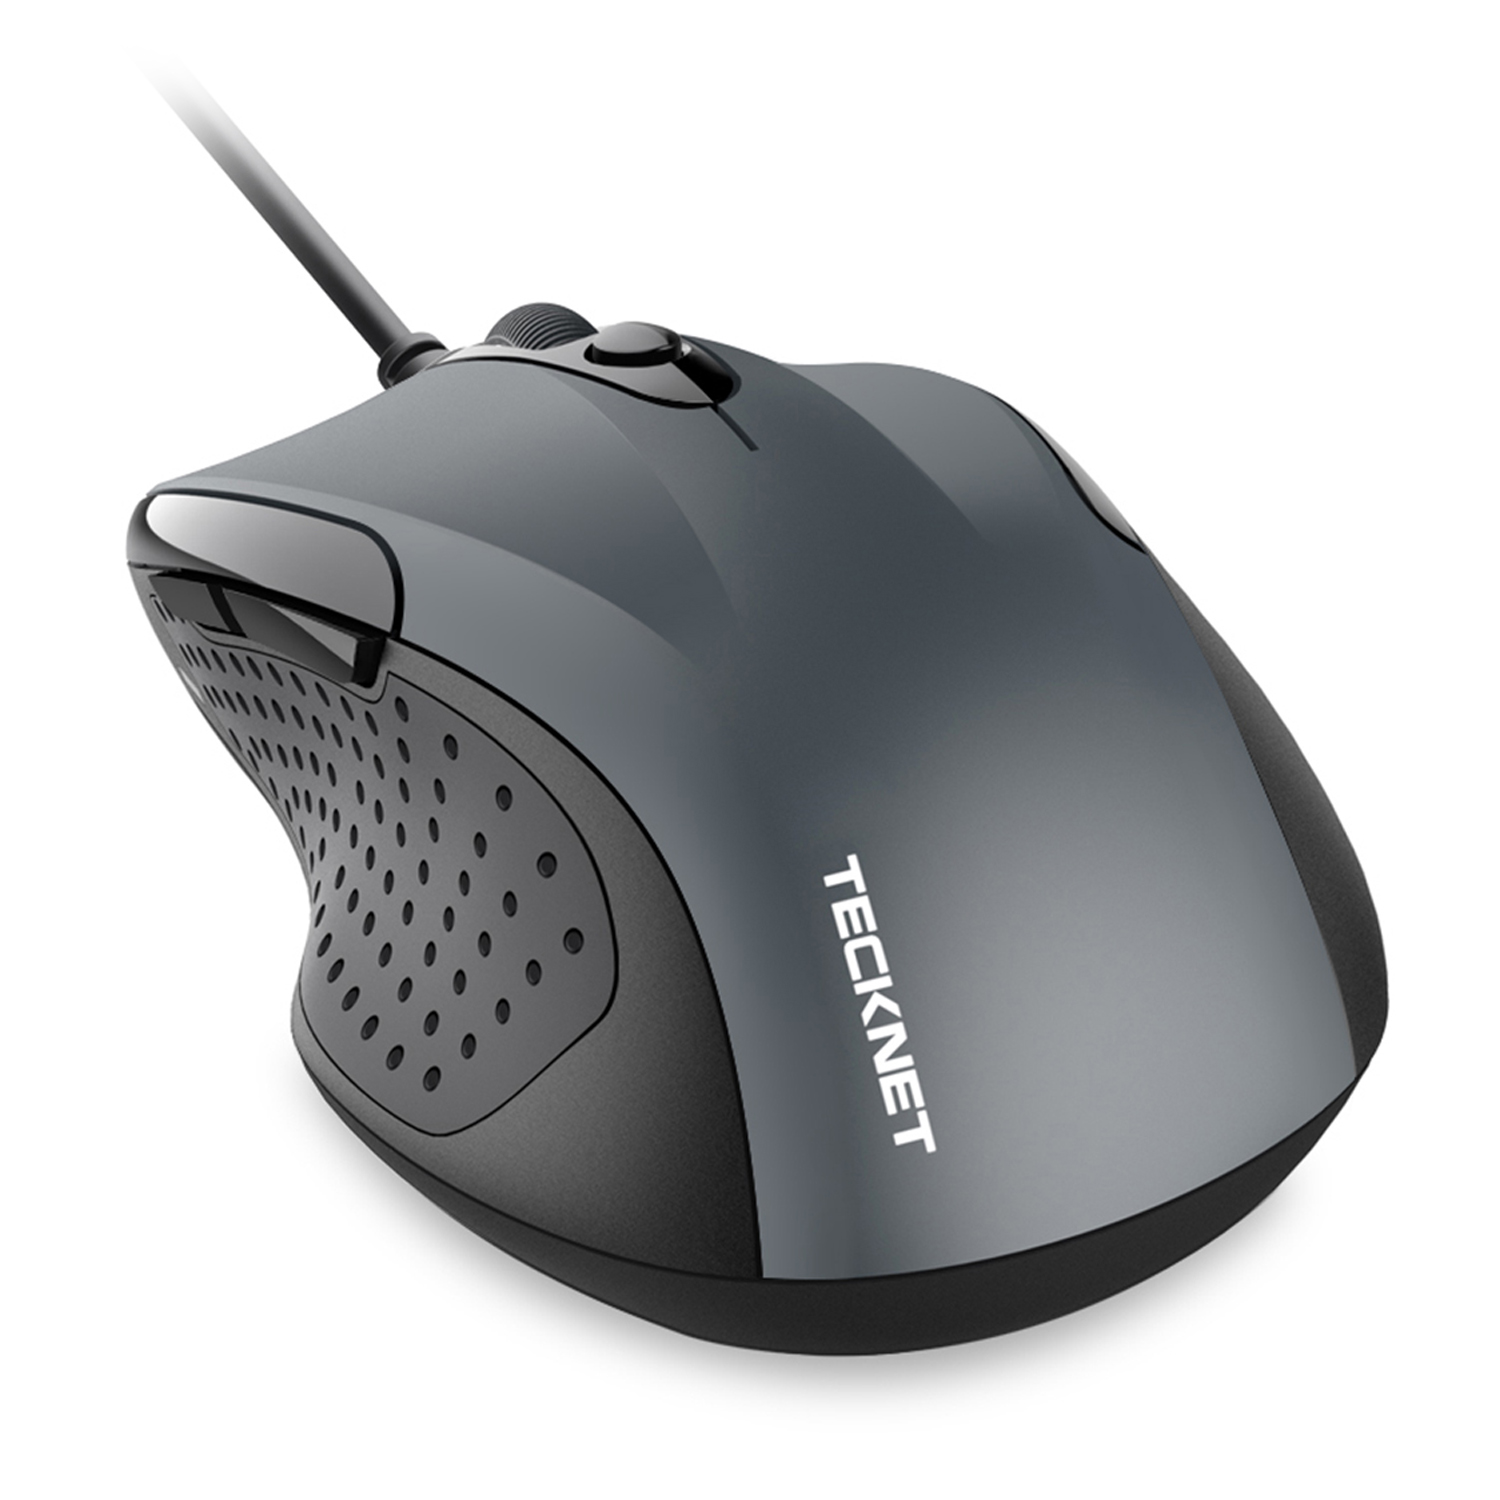 TeckNet TeckNet Pro S2 High Performance Wired USB font b Mouse b font 6 Buttons up